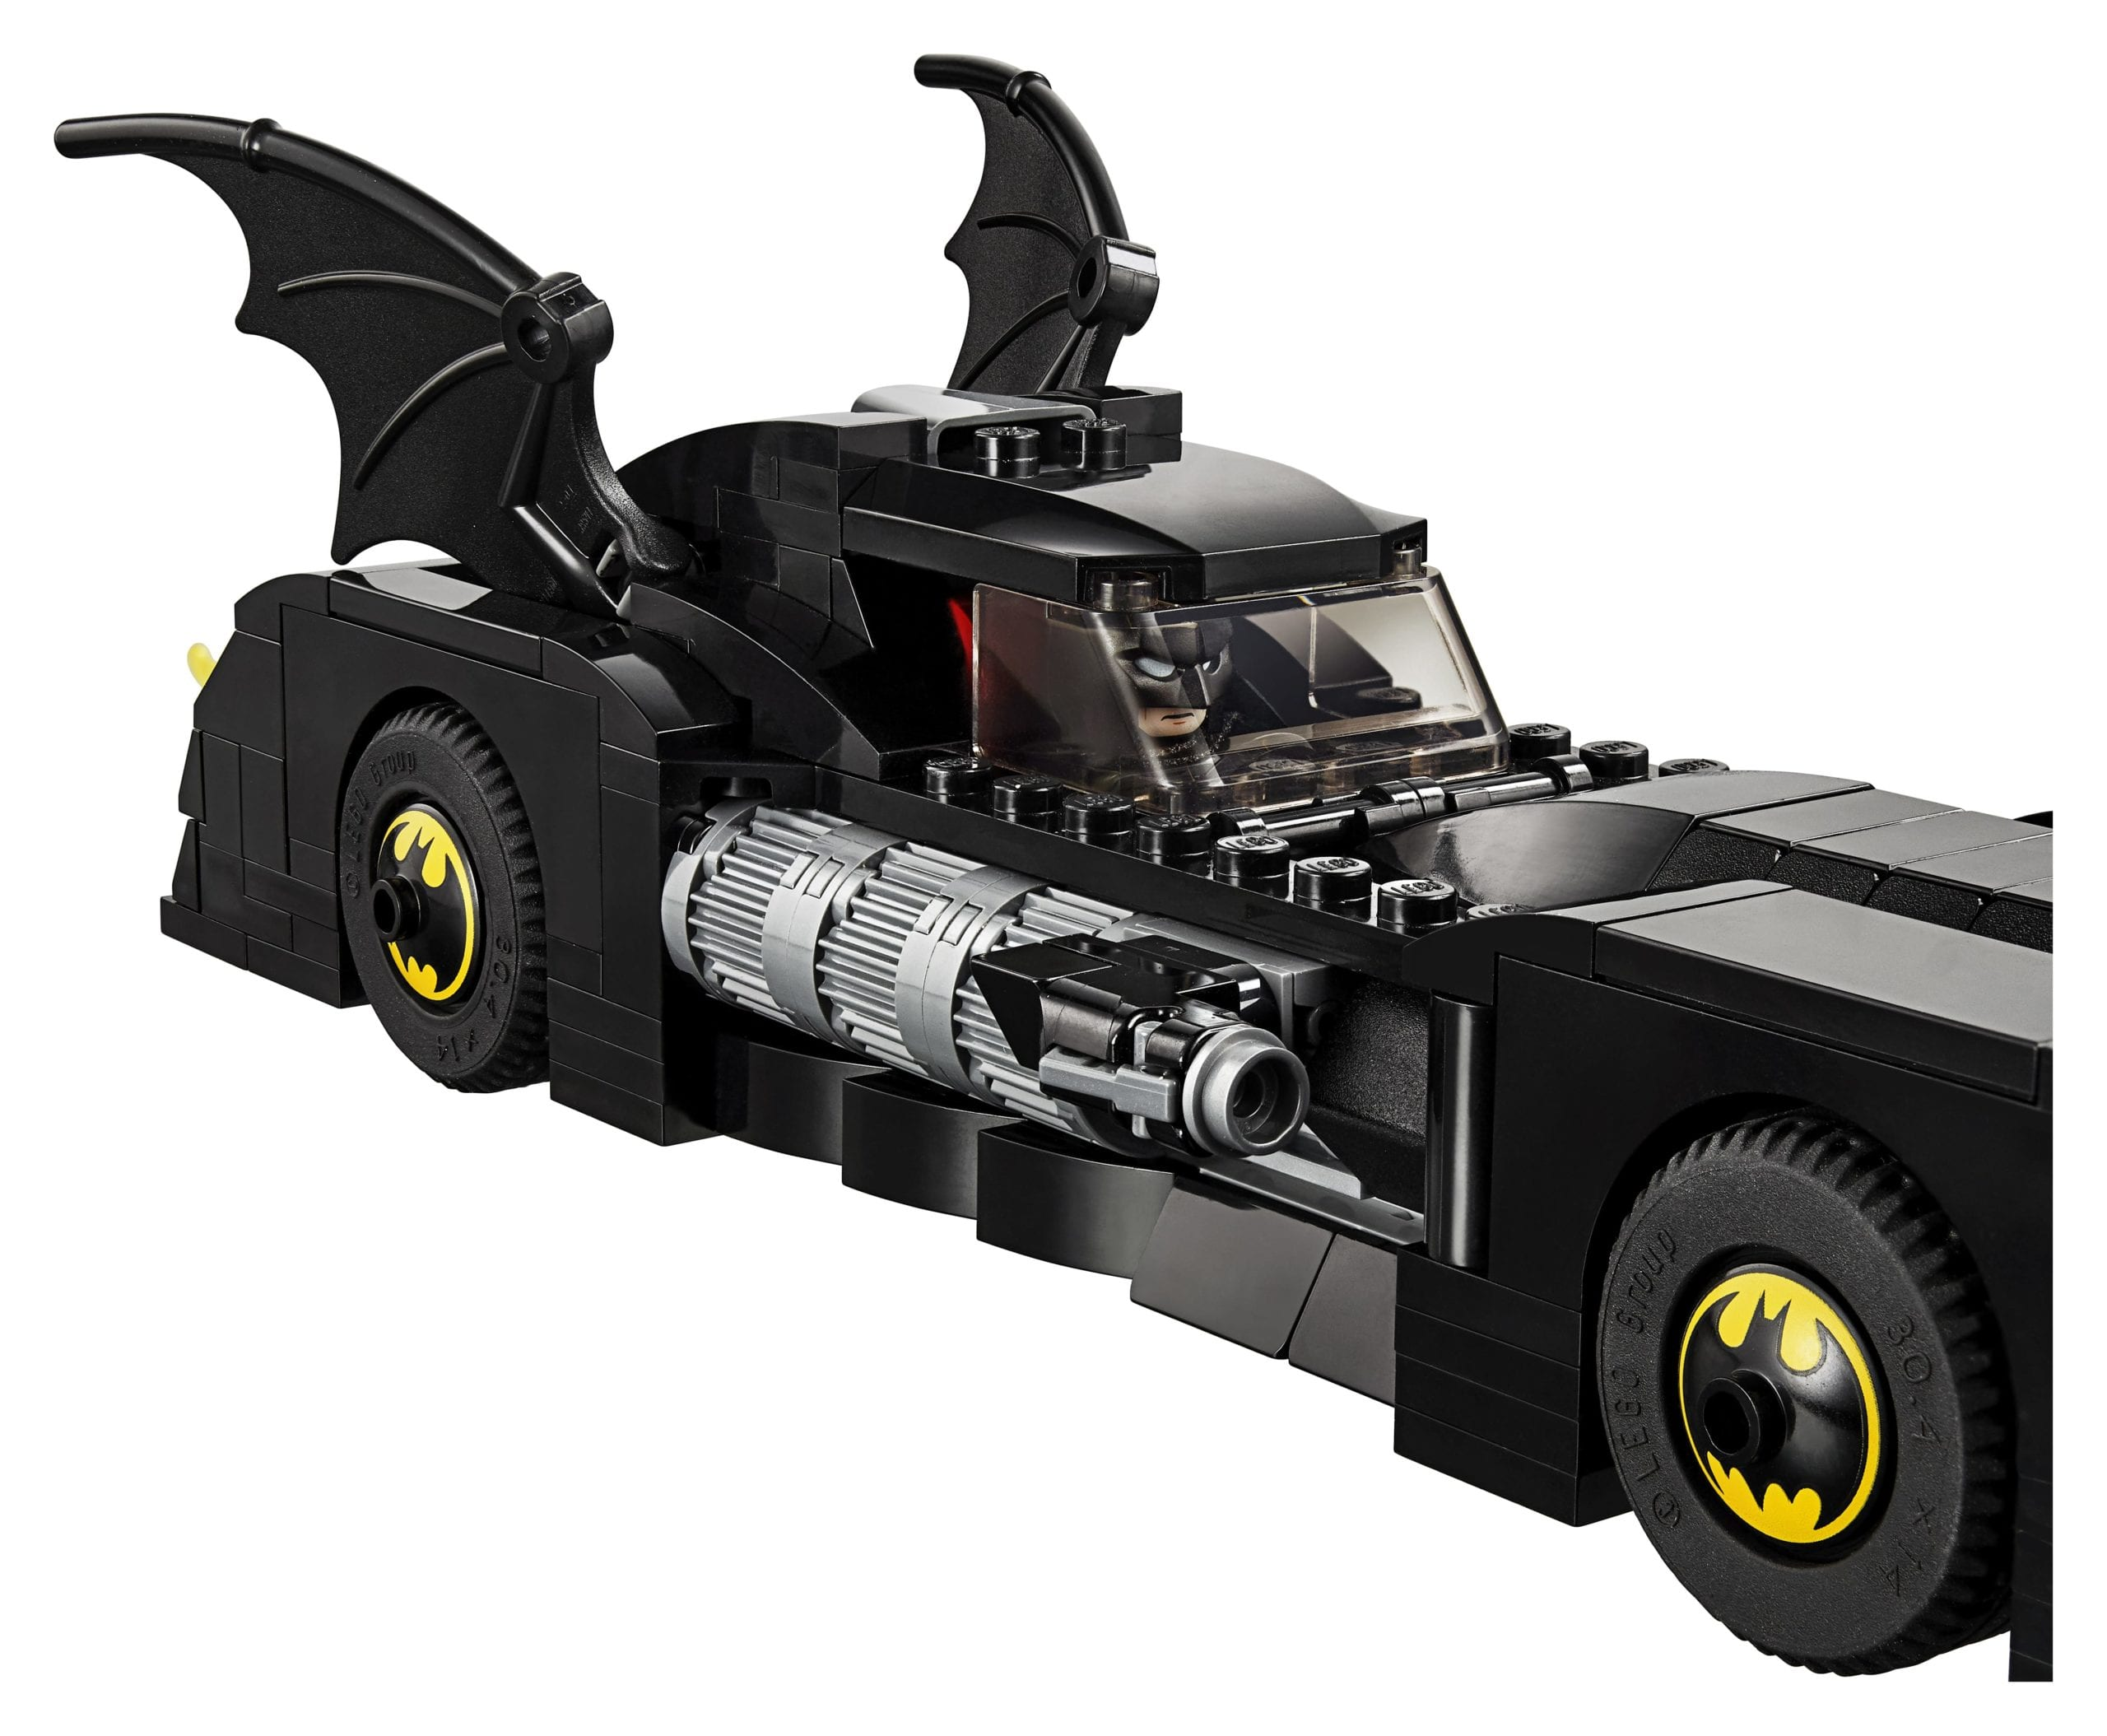 LEGO releases new Batman sets to mark 80th anniversary ...